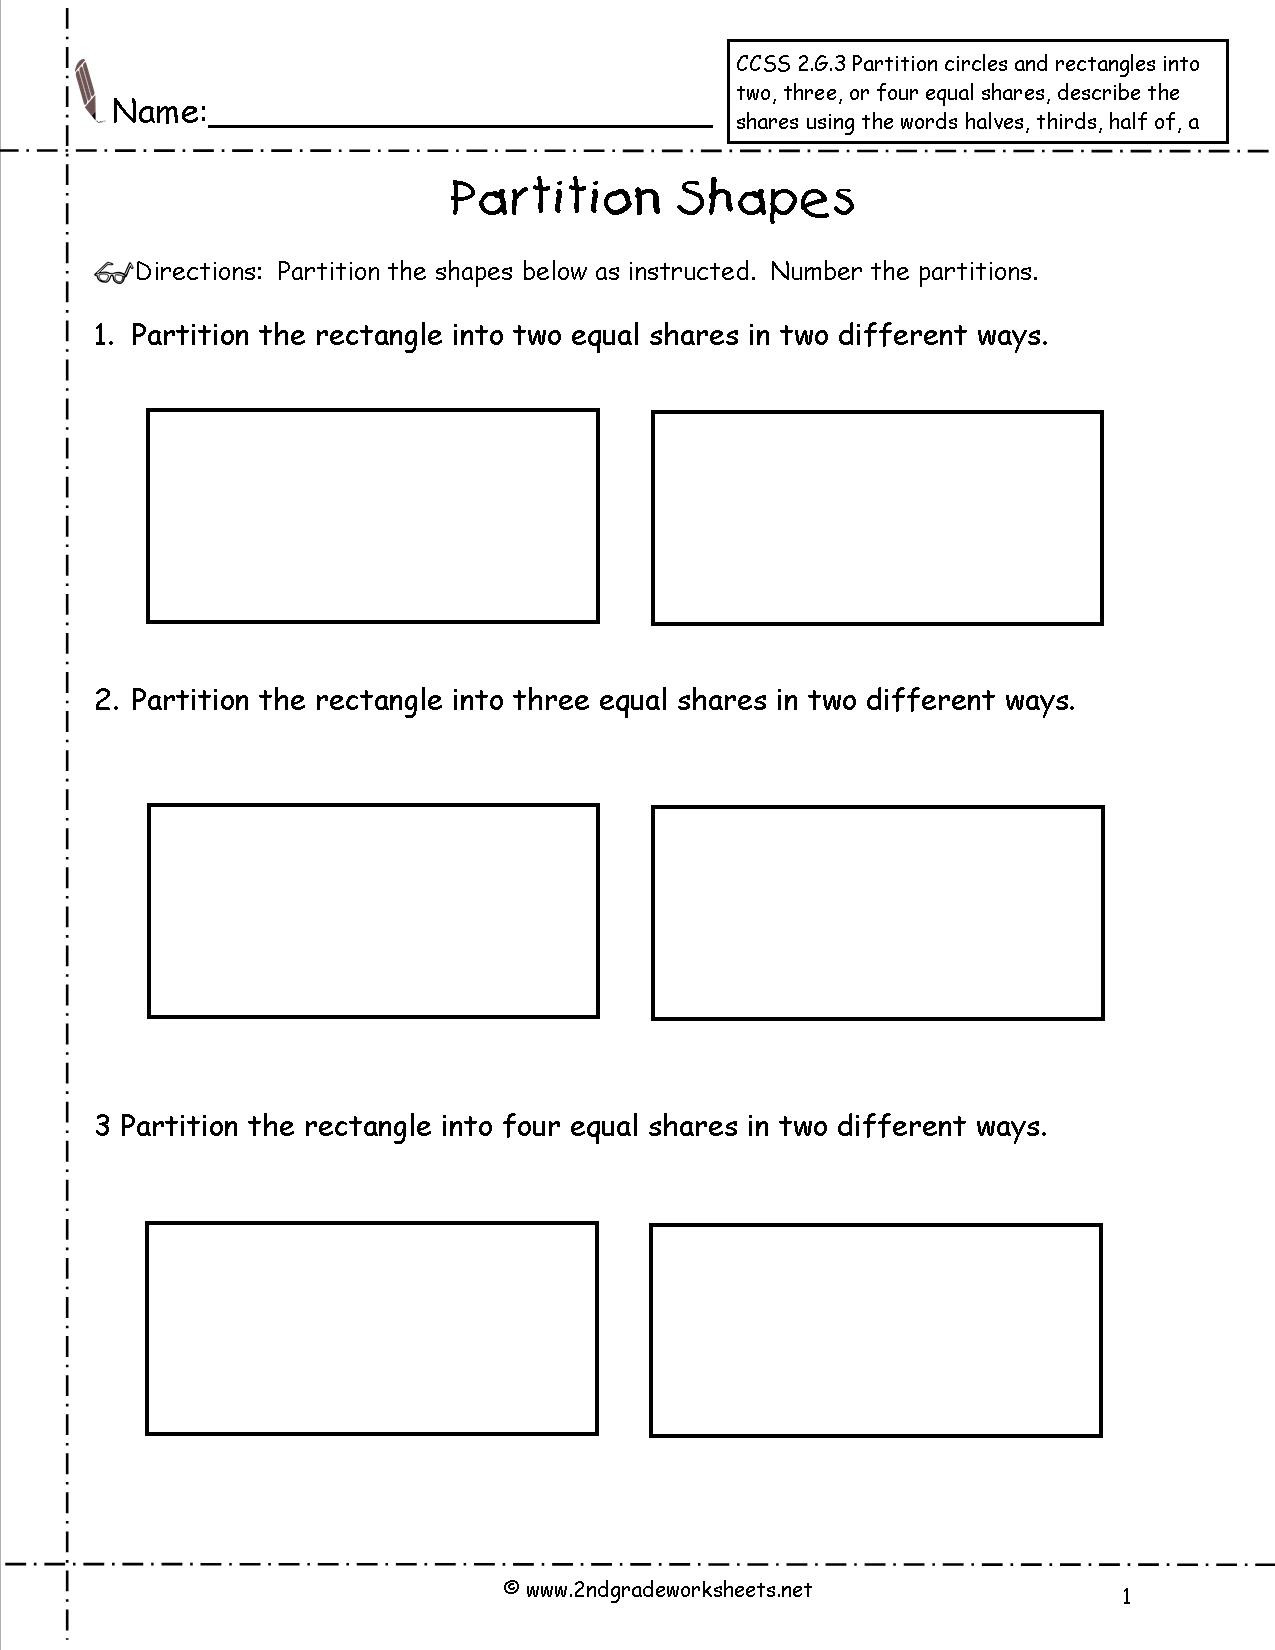 Polygon Worksheets 2nd Grade Ccss 2 G 3 Worksheets Partition Shapes